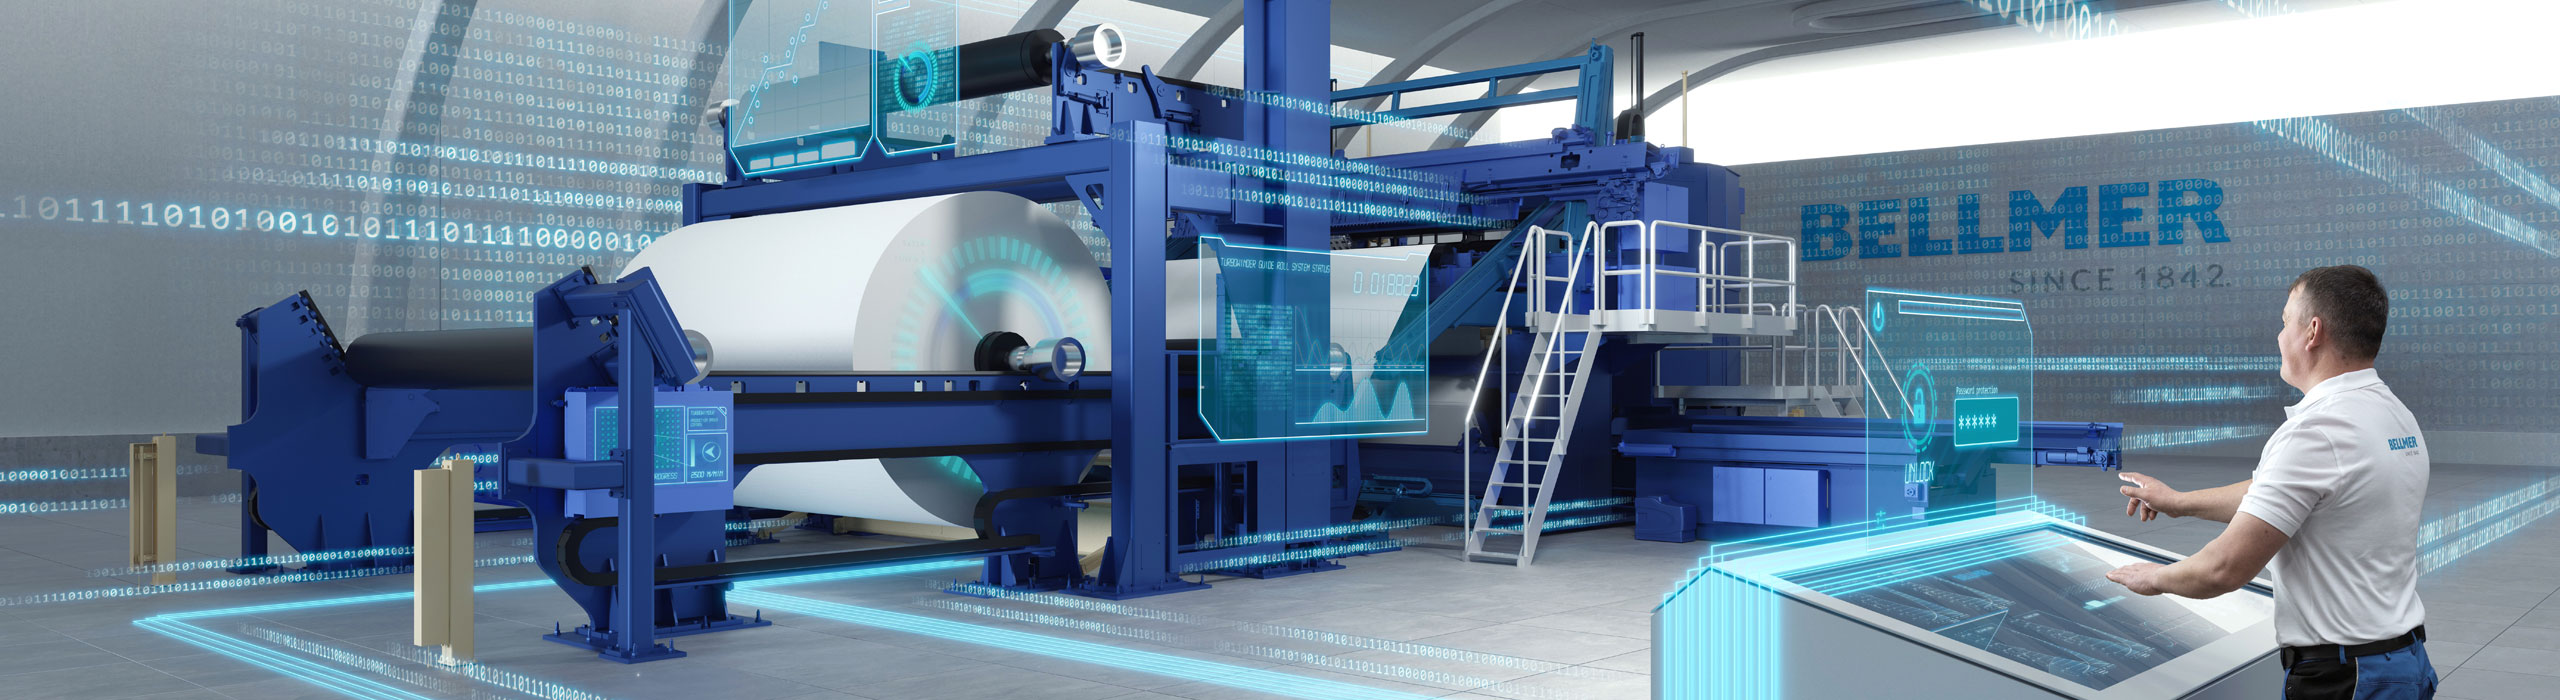 Bellmer Automation Paper Technology